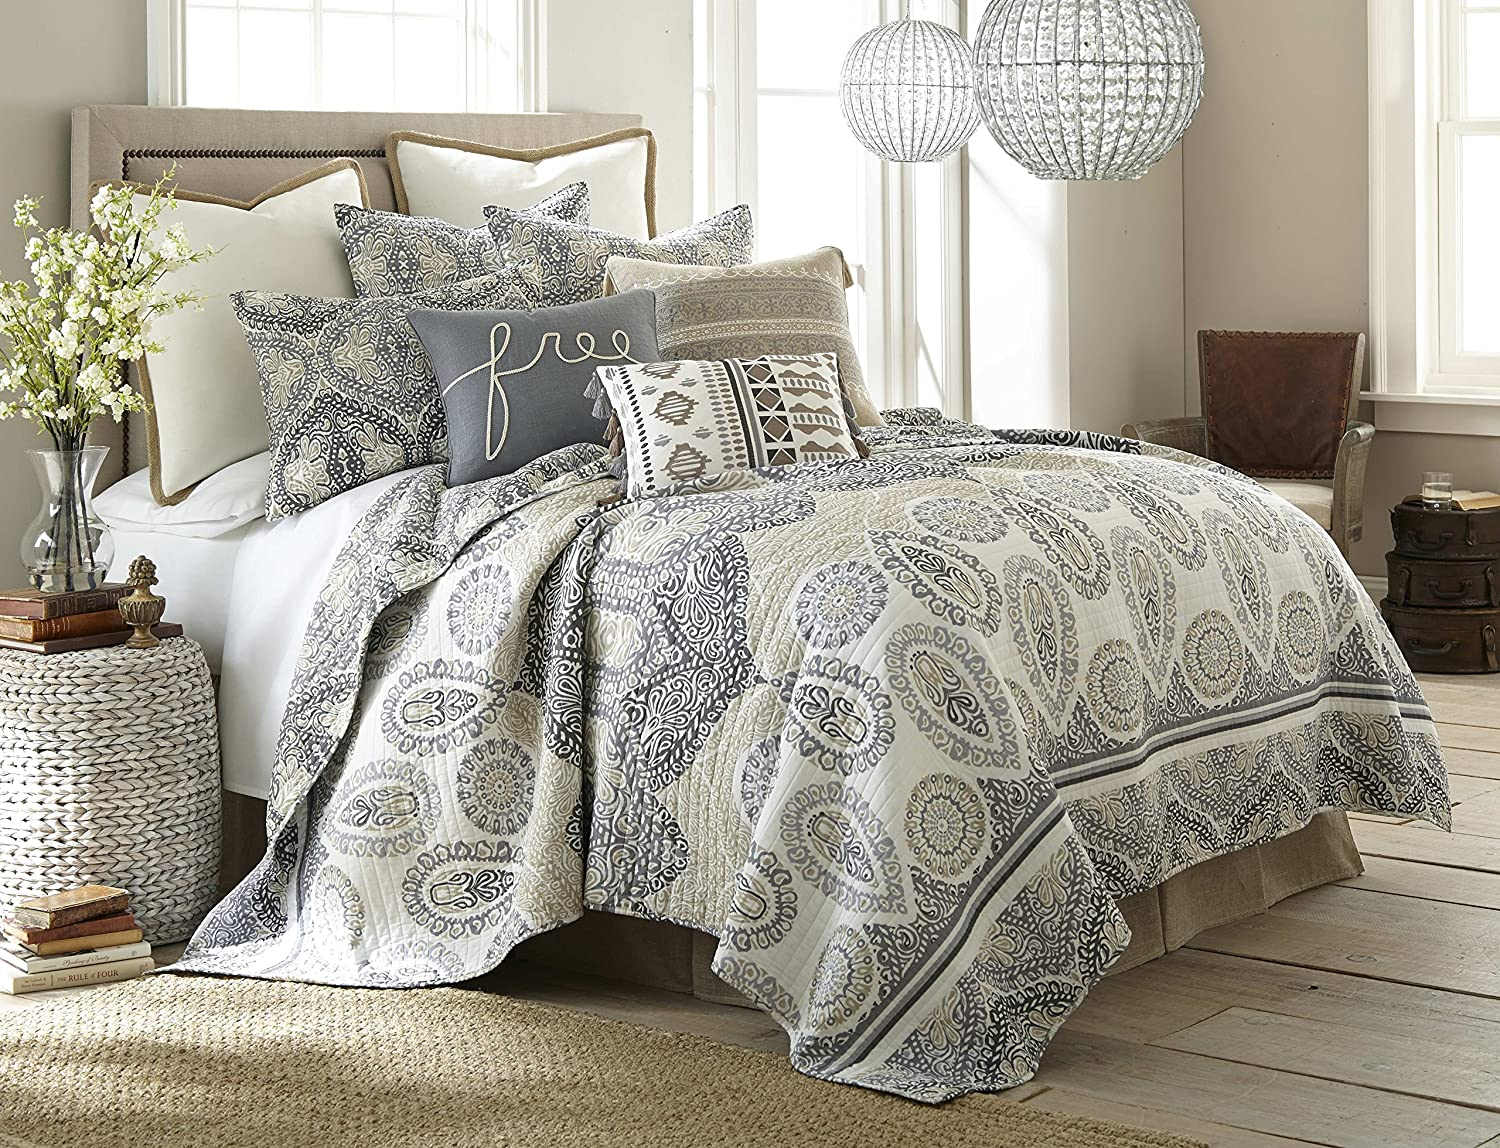 Levtex Trevino King Cotton Quilt Set, Blue/Tan, Medallion